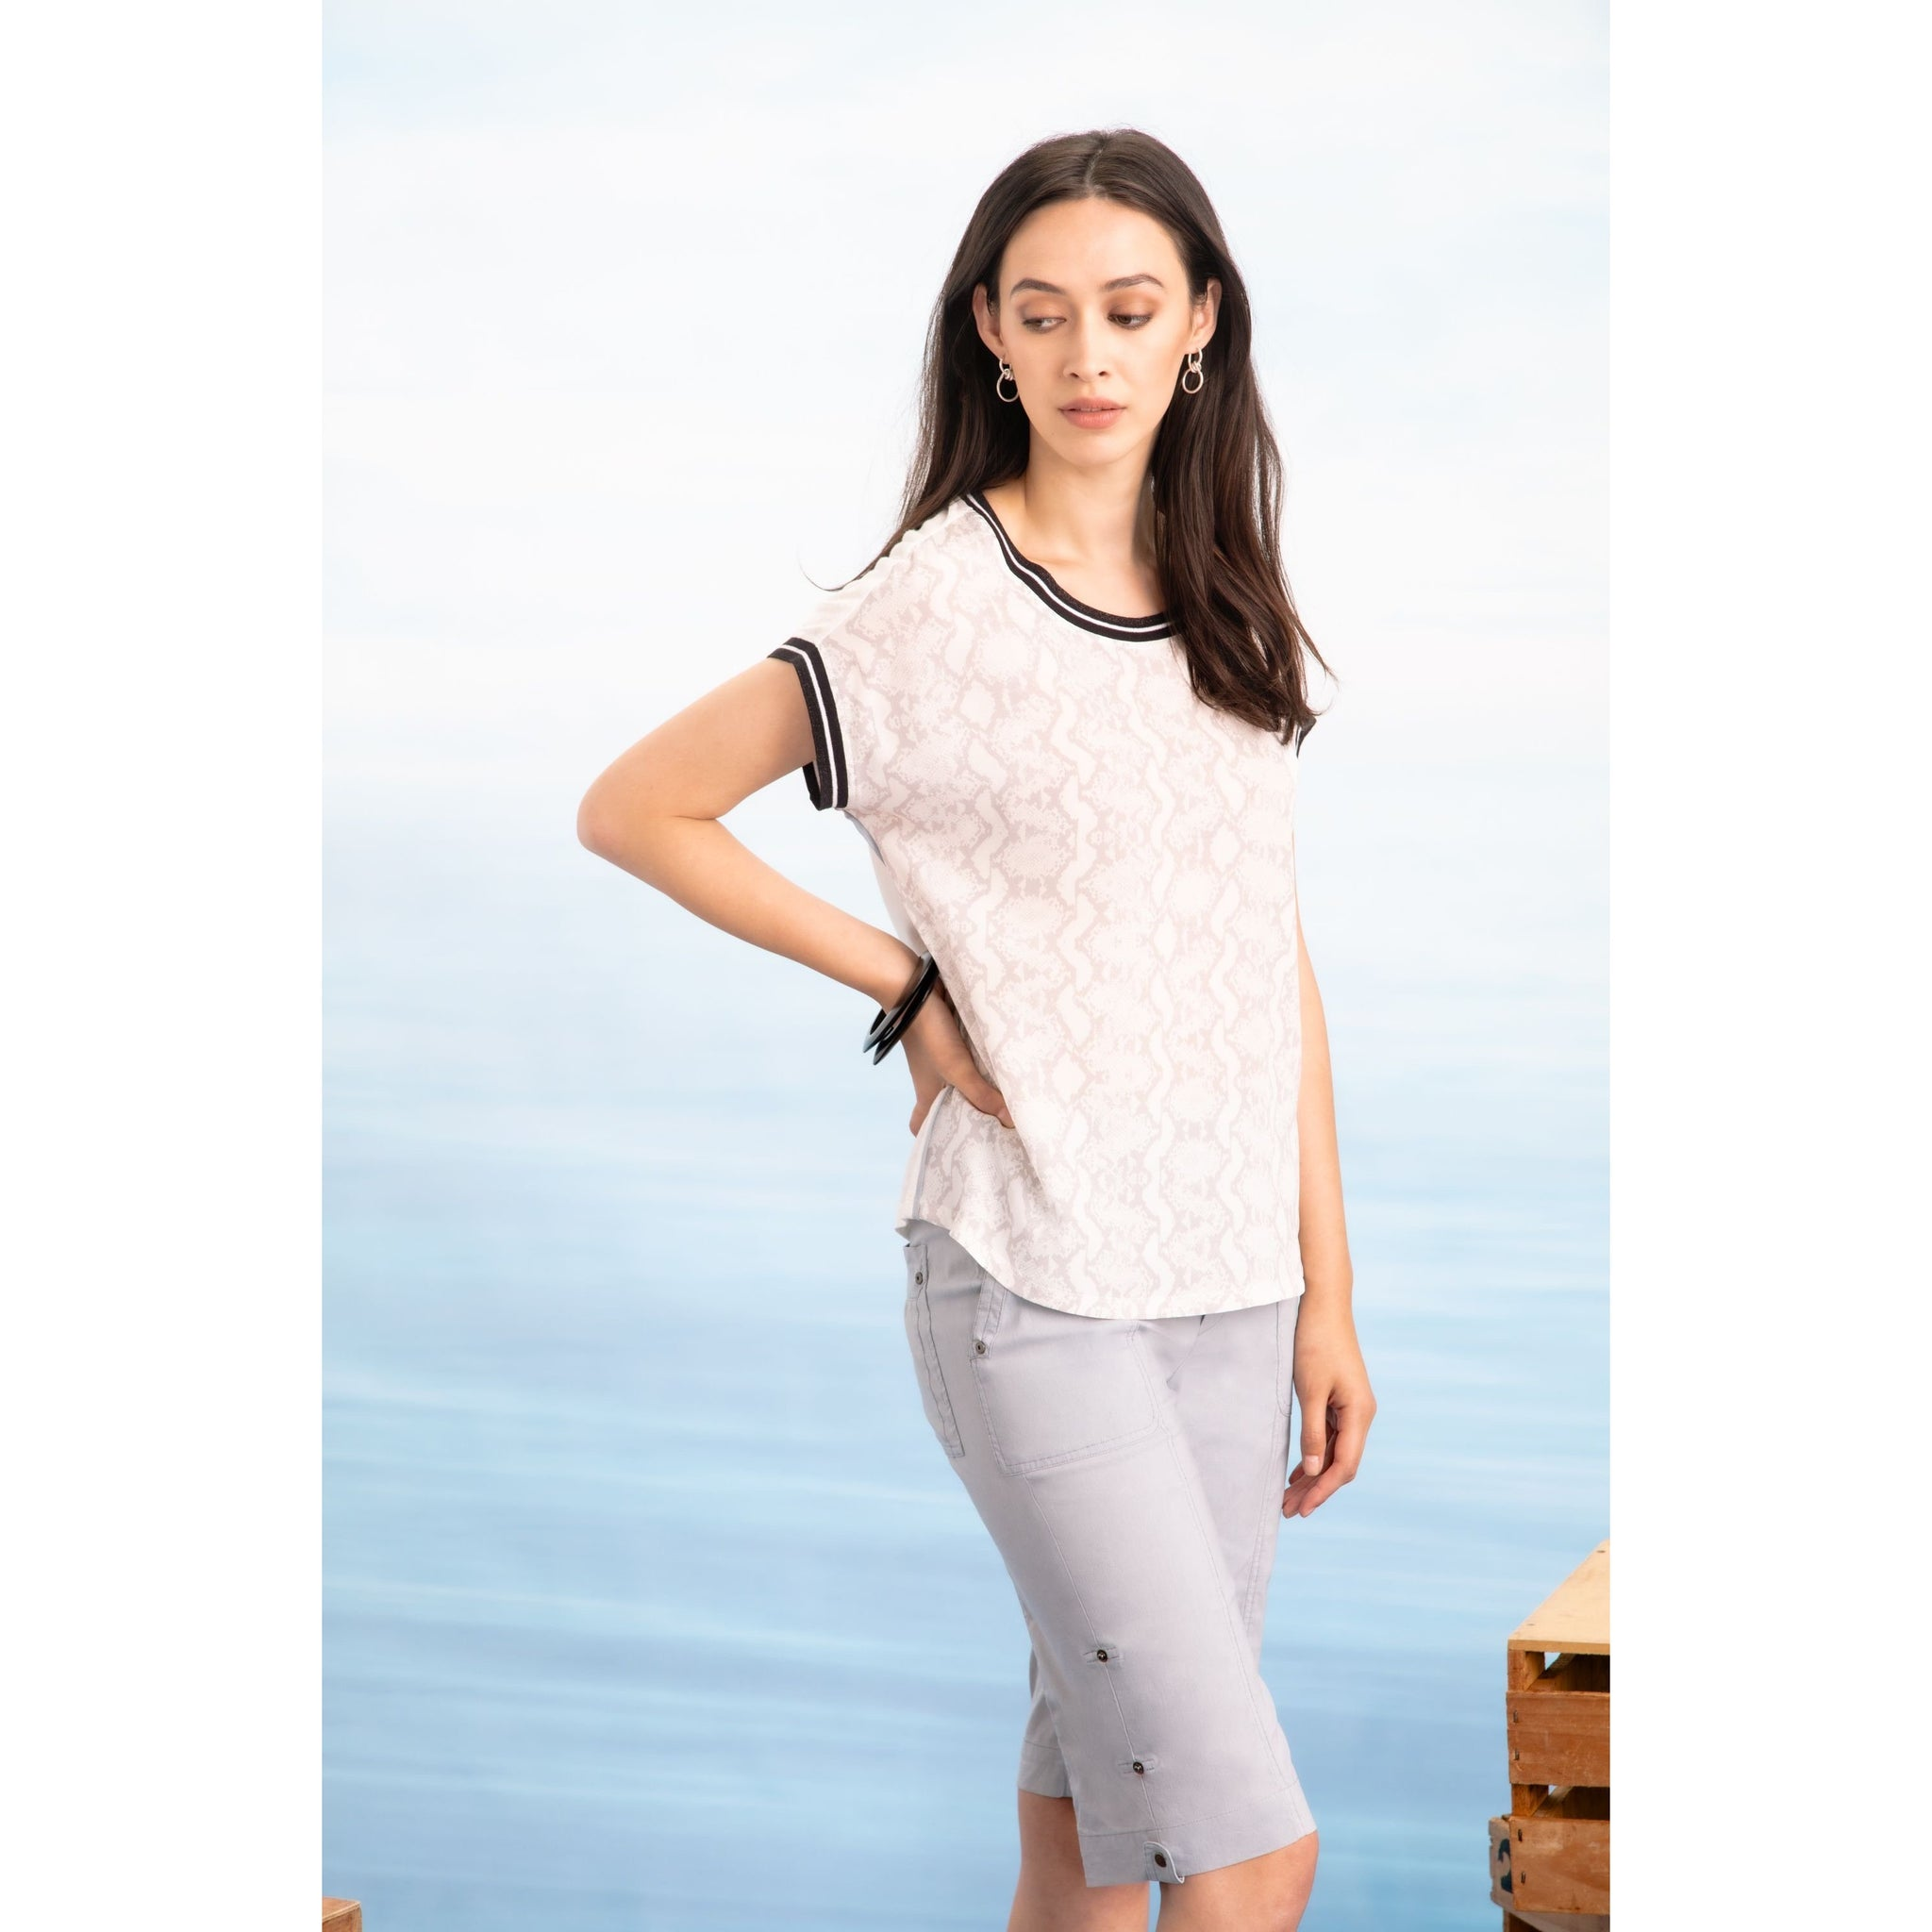 hunter top - By Design Fashions